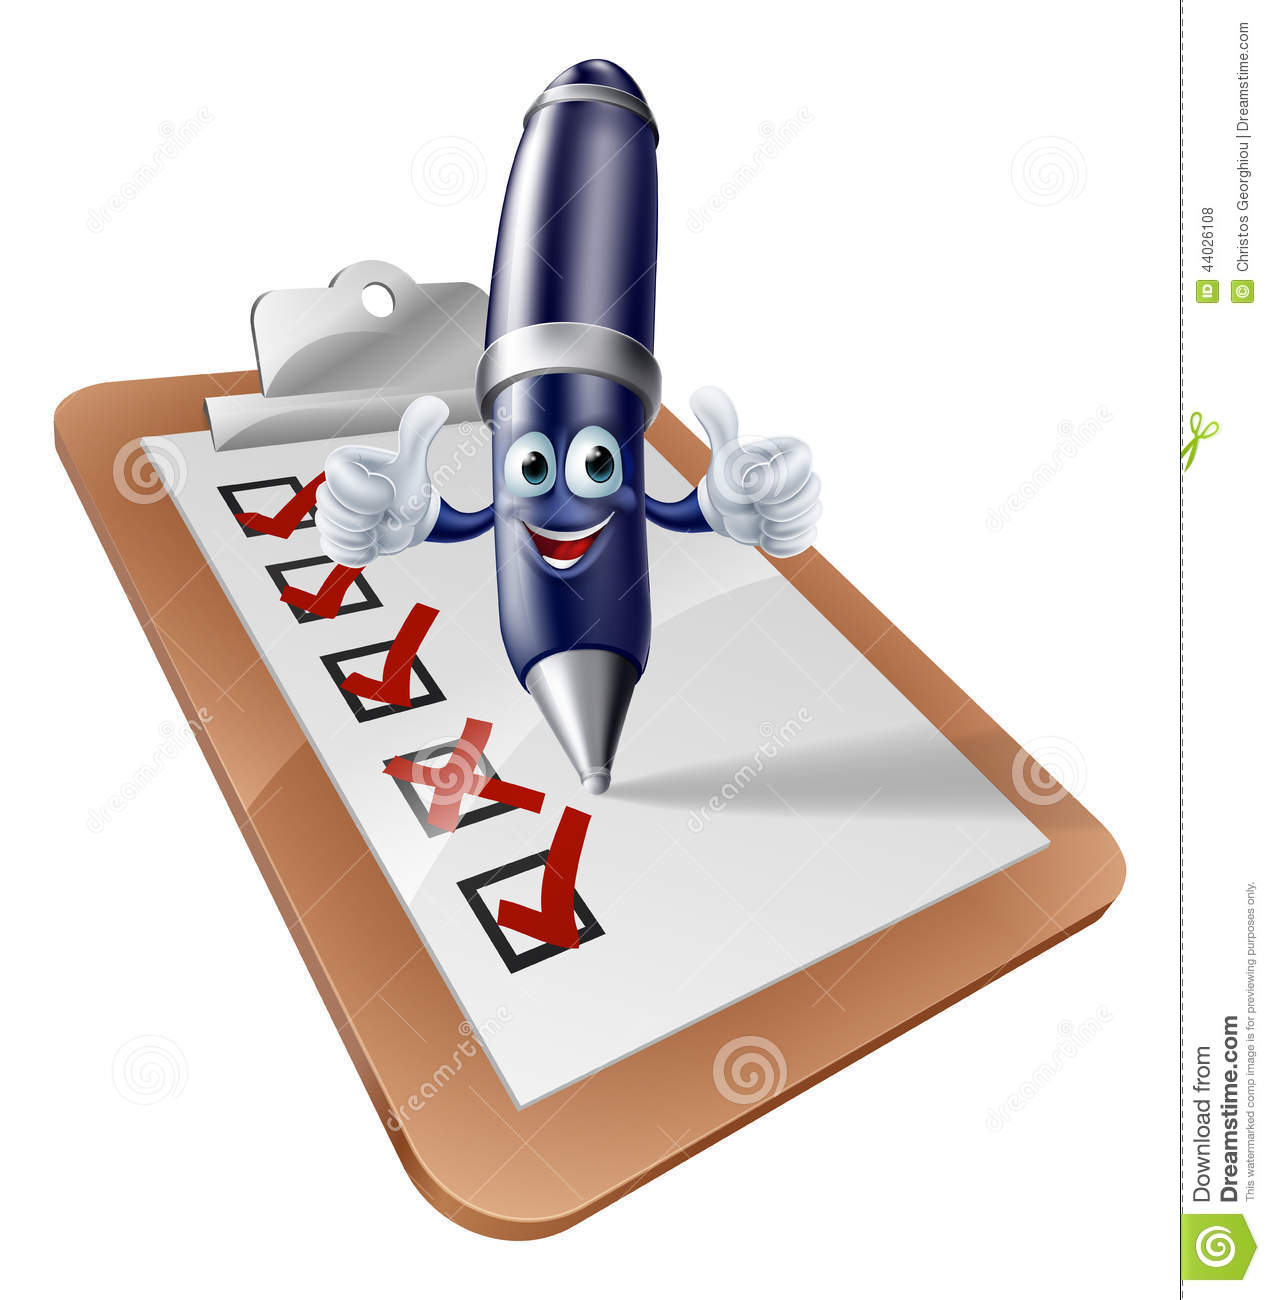 in person surveys pen person and clipboard survey stock vector image 44026108 1669